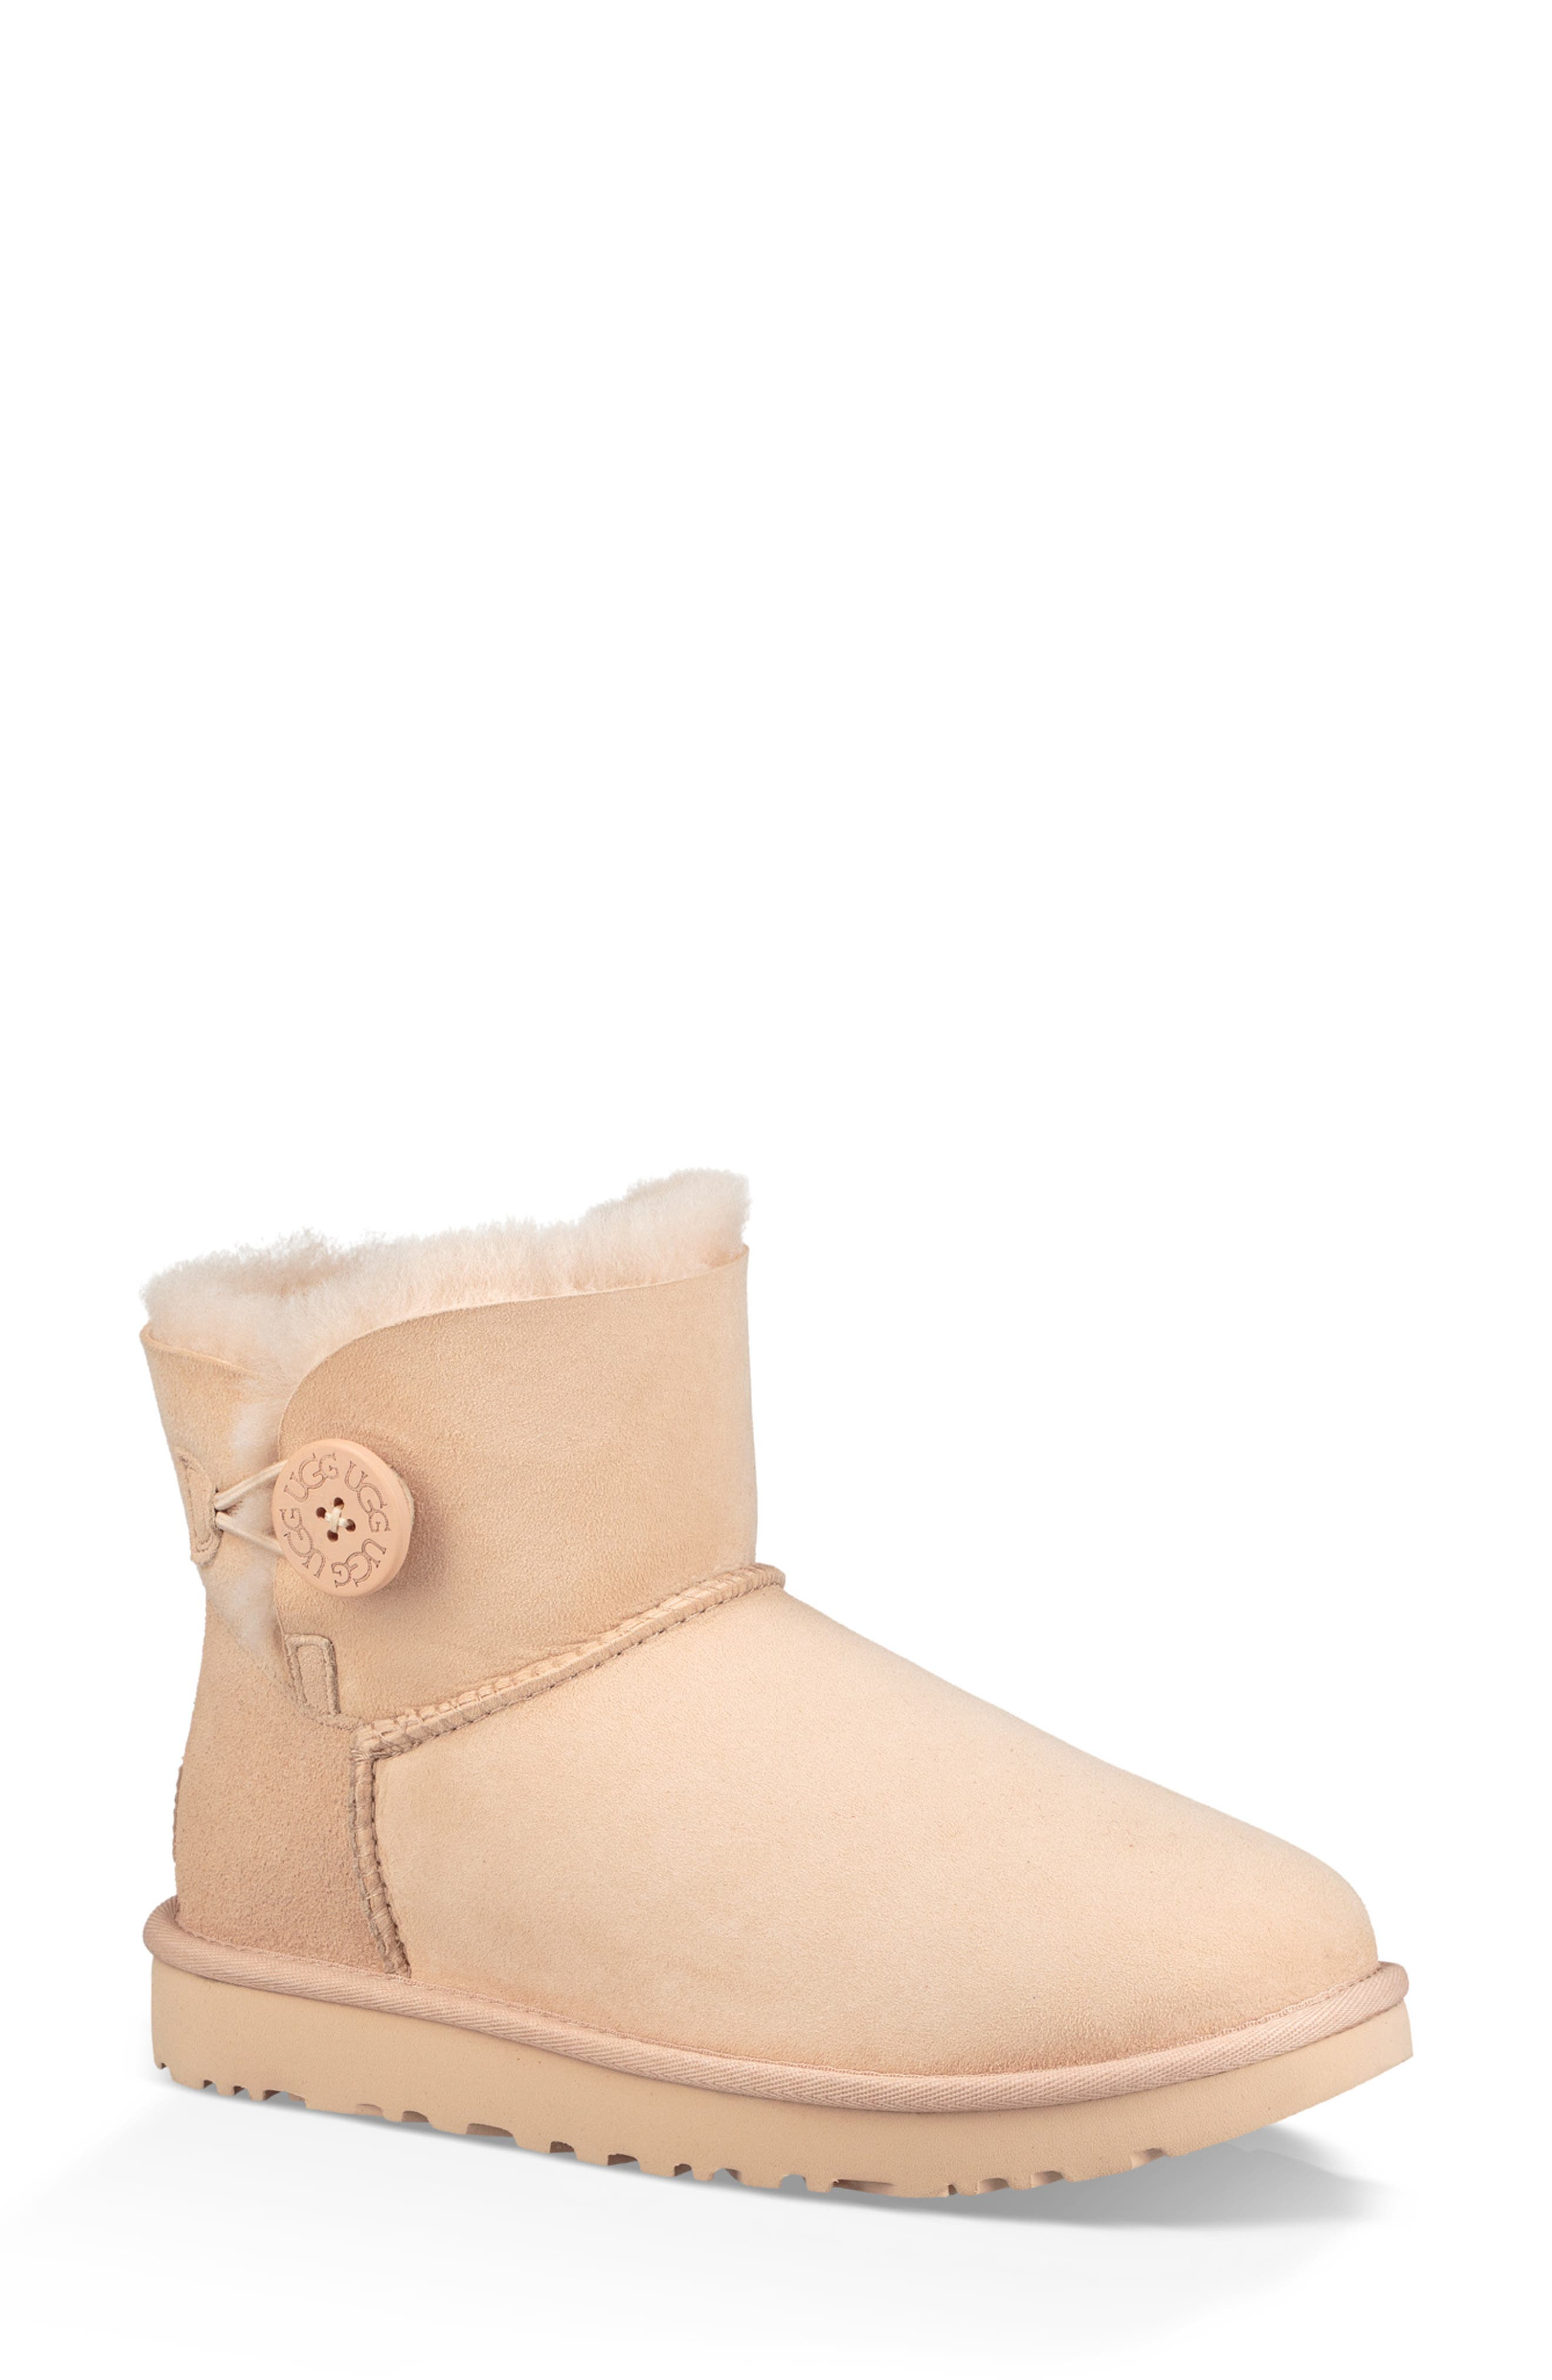 'Mini Bailey Button II' Boot,                             Main thumbnail 1, color,                             AMBER LIGHT SUEDE